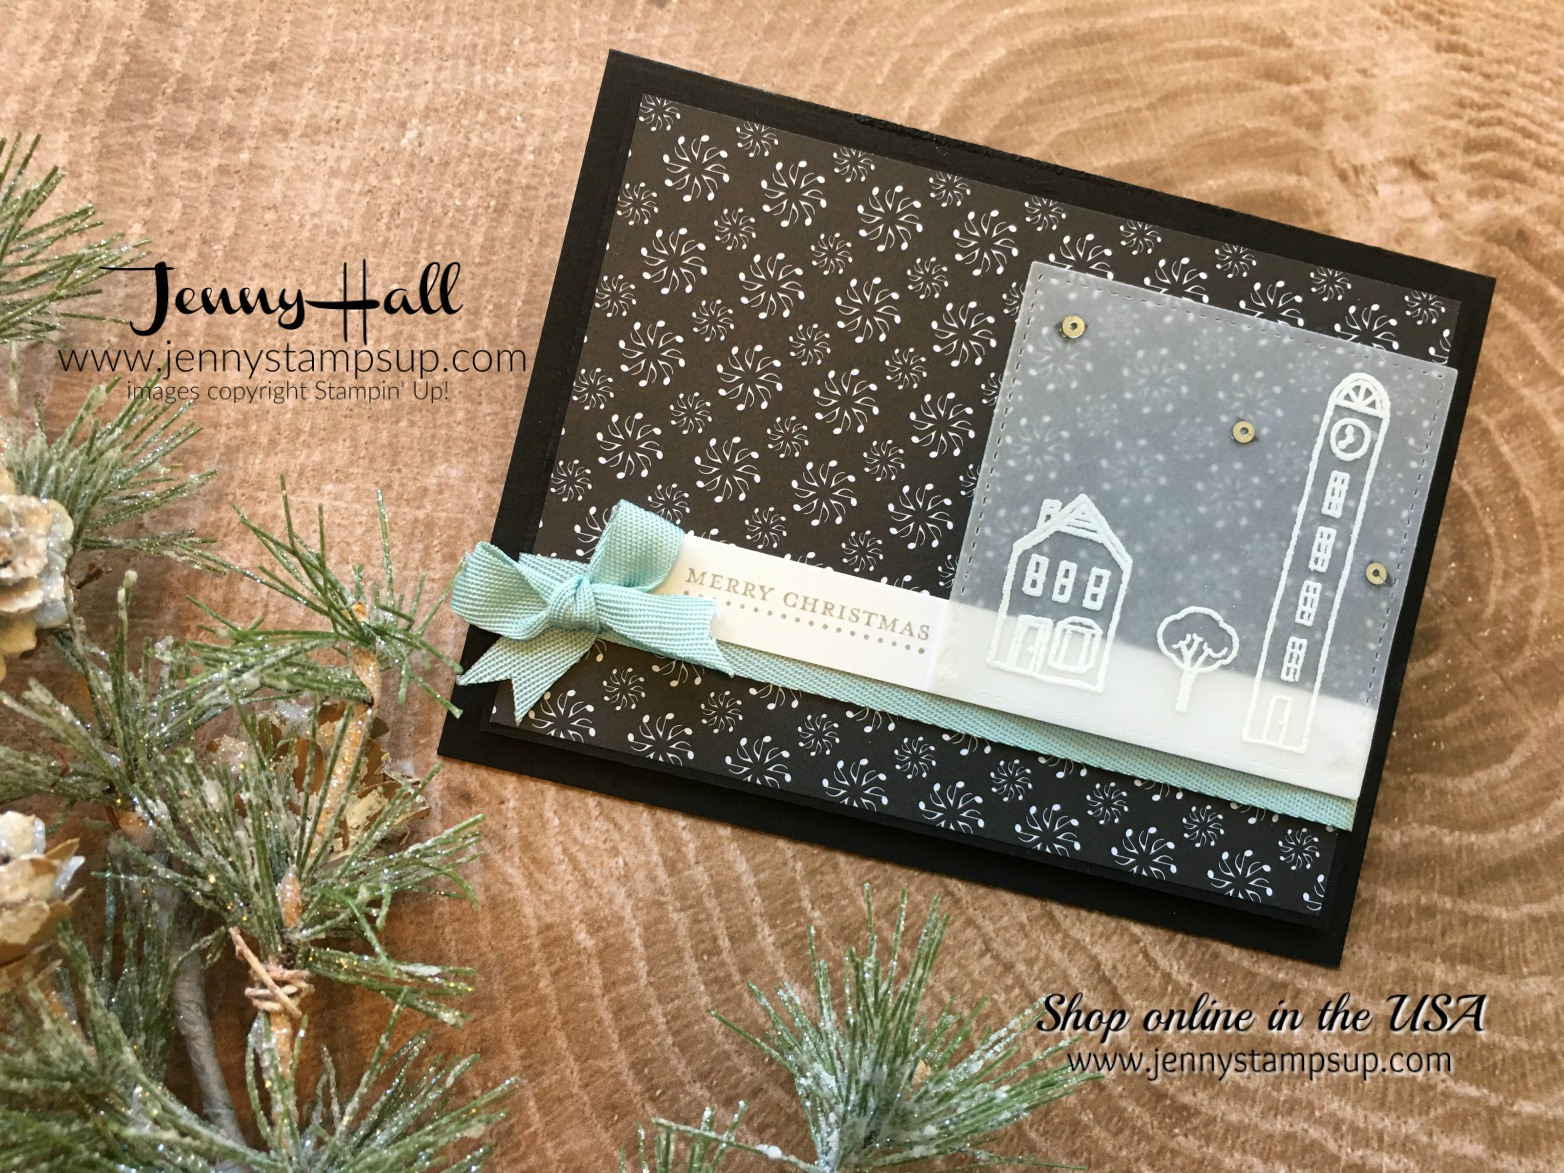 OSAT November Blog Hop card by Jenny Hall at www.jennystampsup.com for Stampin' Up! products, cardmaking, papercraft gifting, free video tutorials, scrapbooking and more!